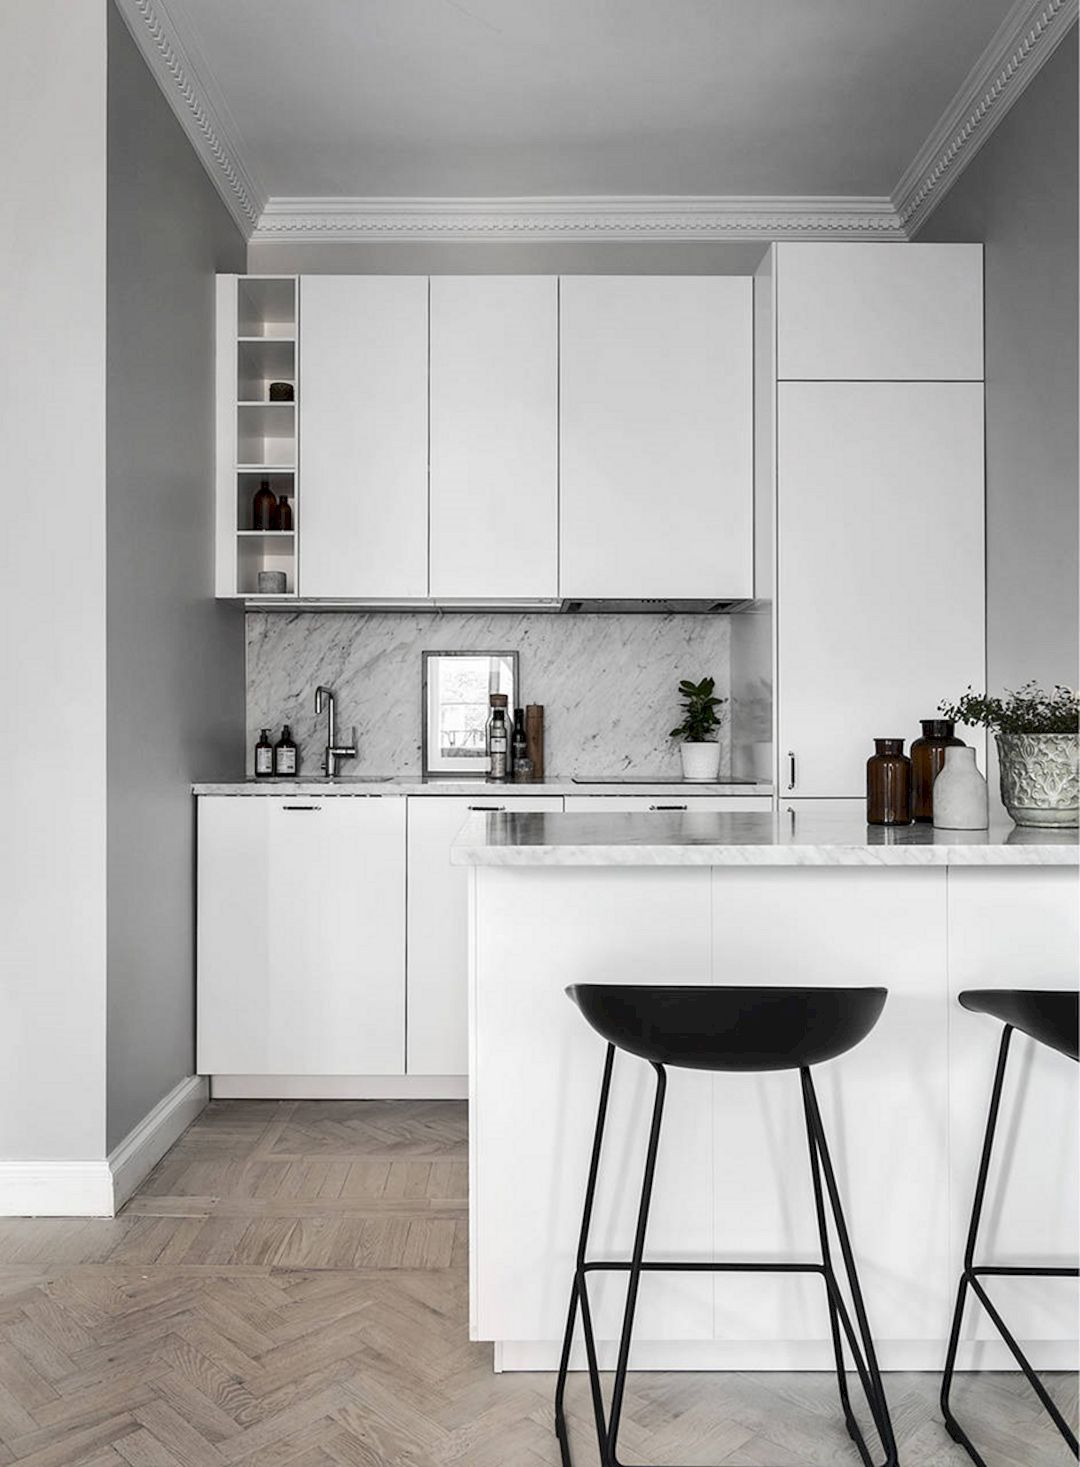 15 Clever Ideas To Decorate Your Small Living Room Small Apartment Kitchen Decor Scandinavian Kitchen Design Small Condo Kitchen